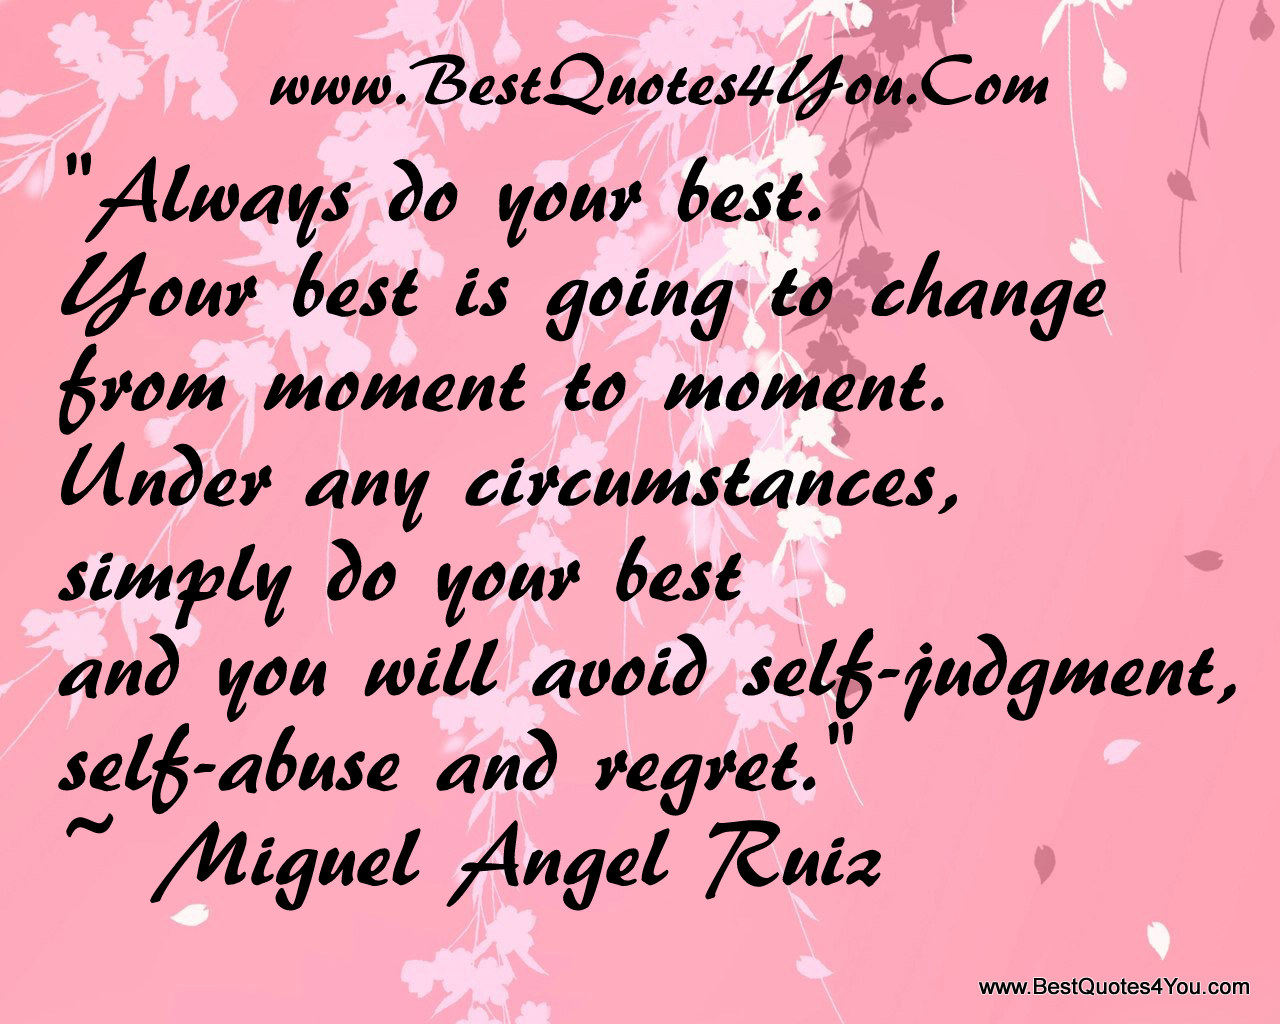 """ Always Do Your Best. Your Best Is Going To Change From Moment To Moment. Under Any Circumstances, Simply Do Your Best And You Will Avoid Self-Judgment, Self-Abuse And Regret "" - - Mignel Angel Ruiz"